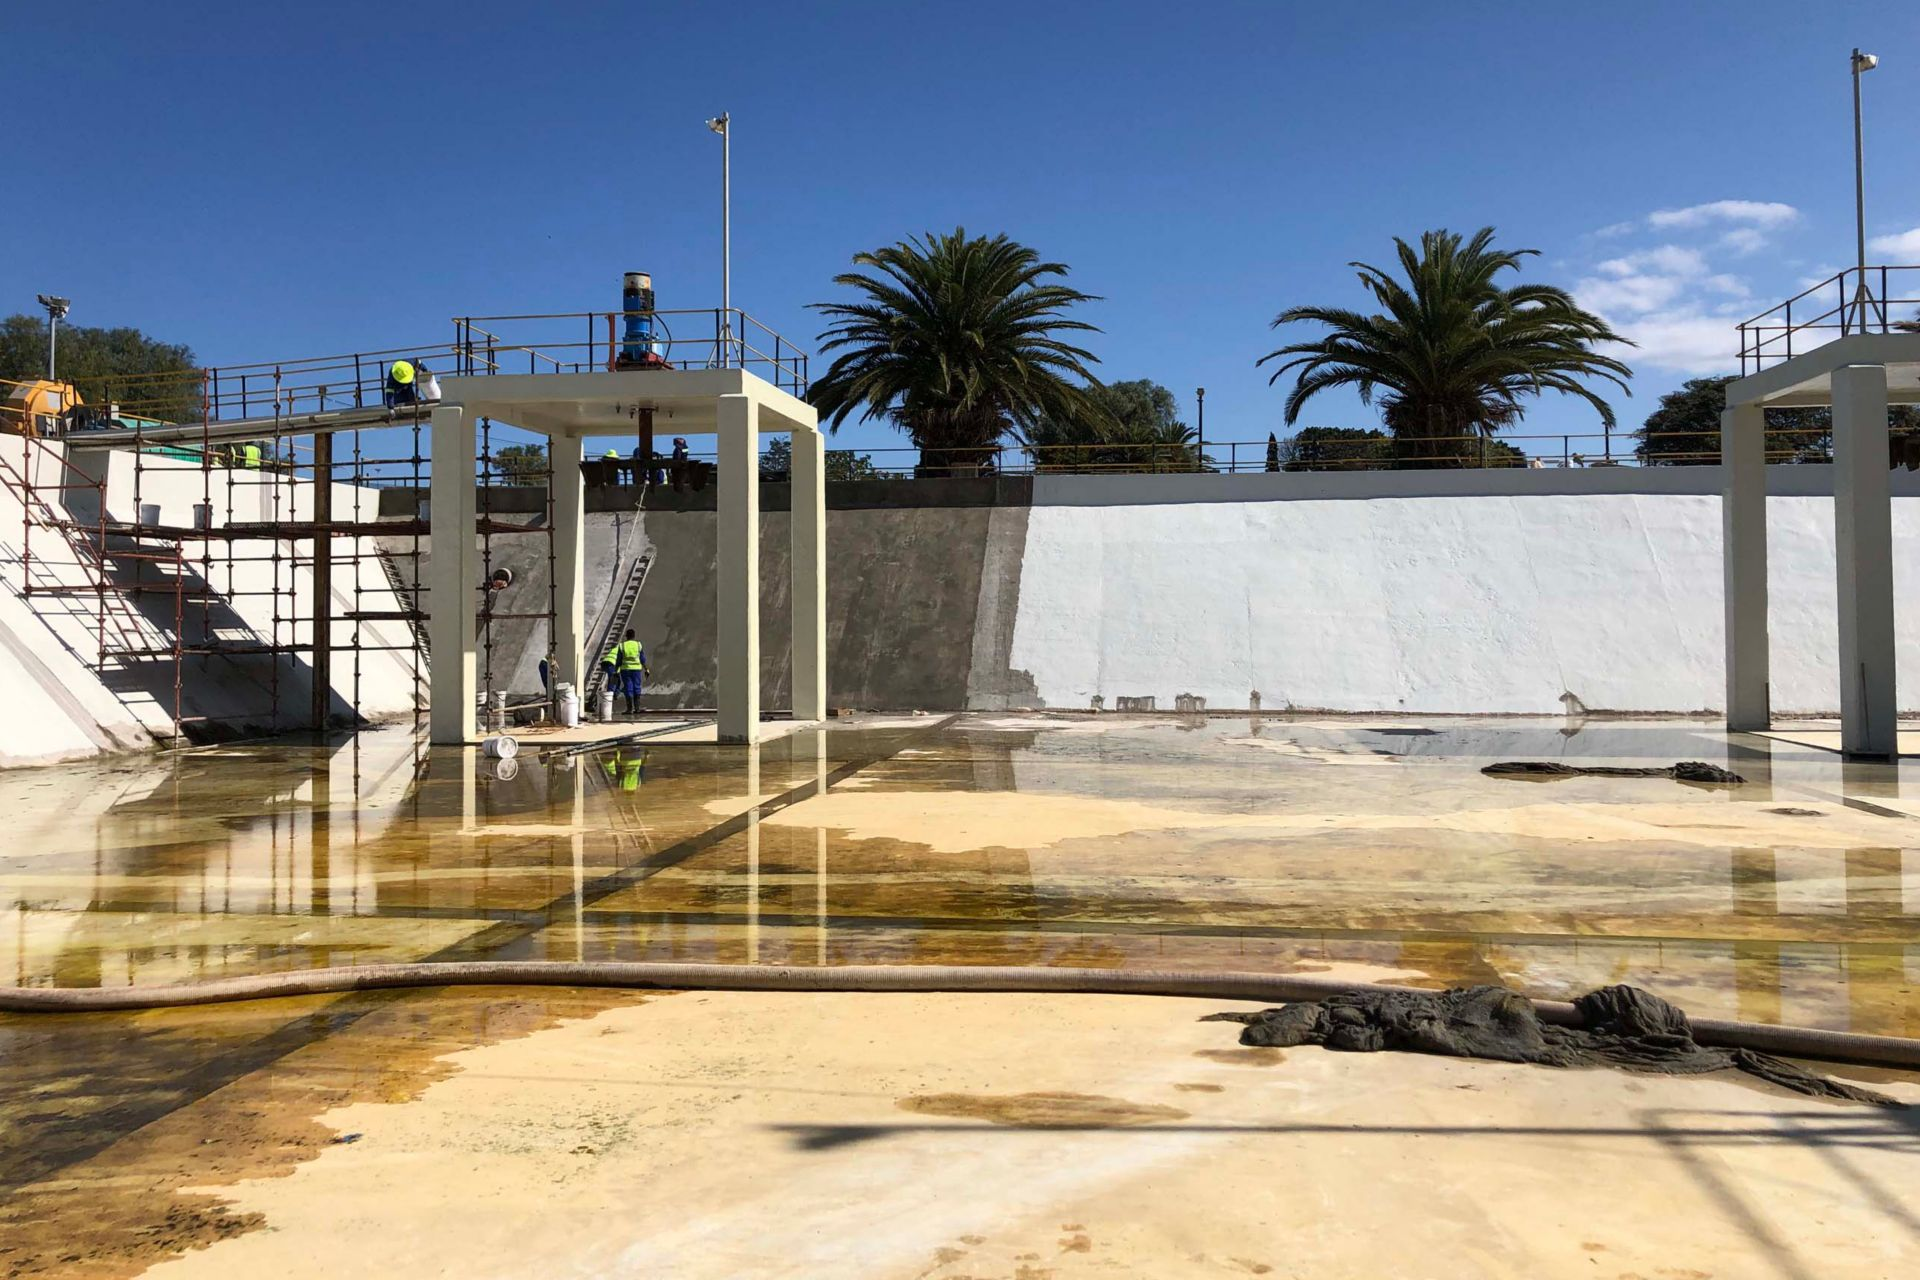 Restoration work in progress at wastewater treatment plant in Kwanobuhle.